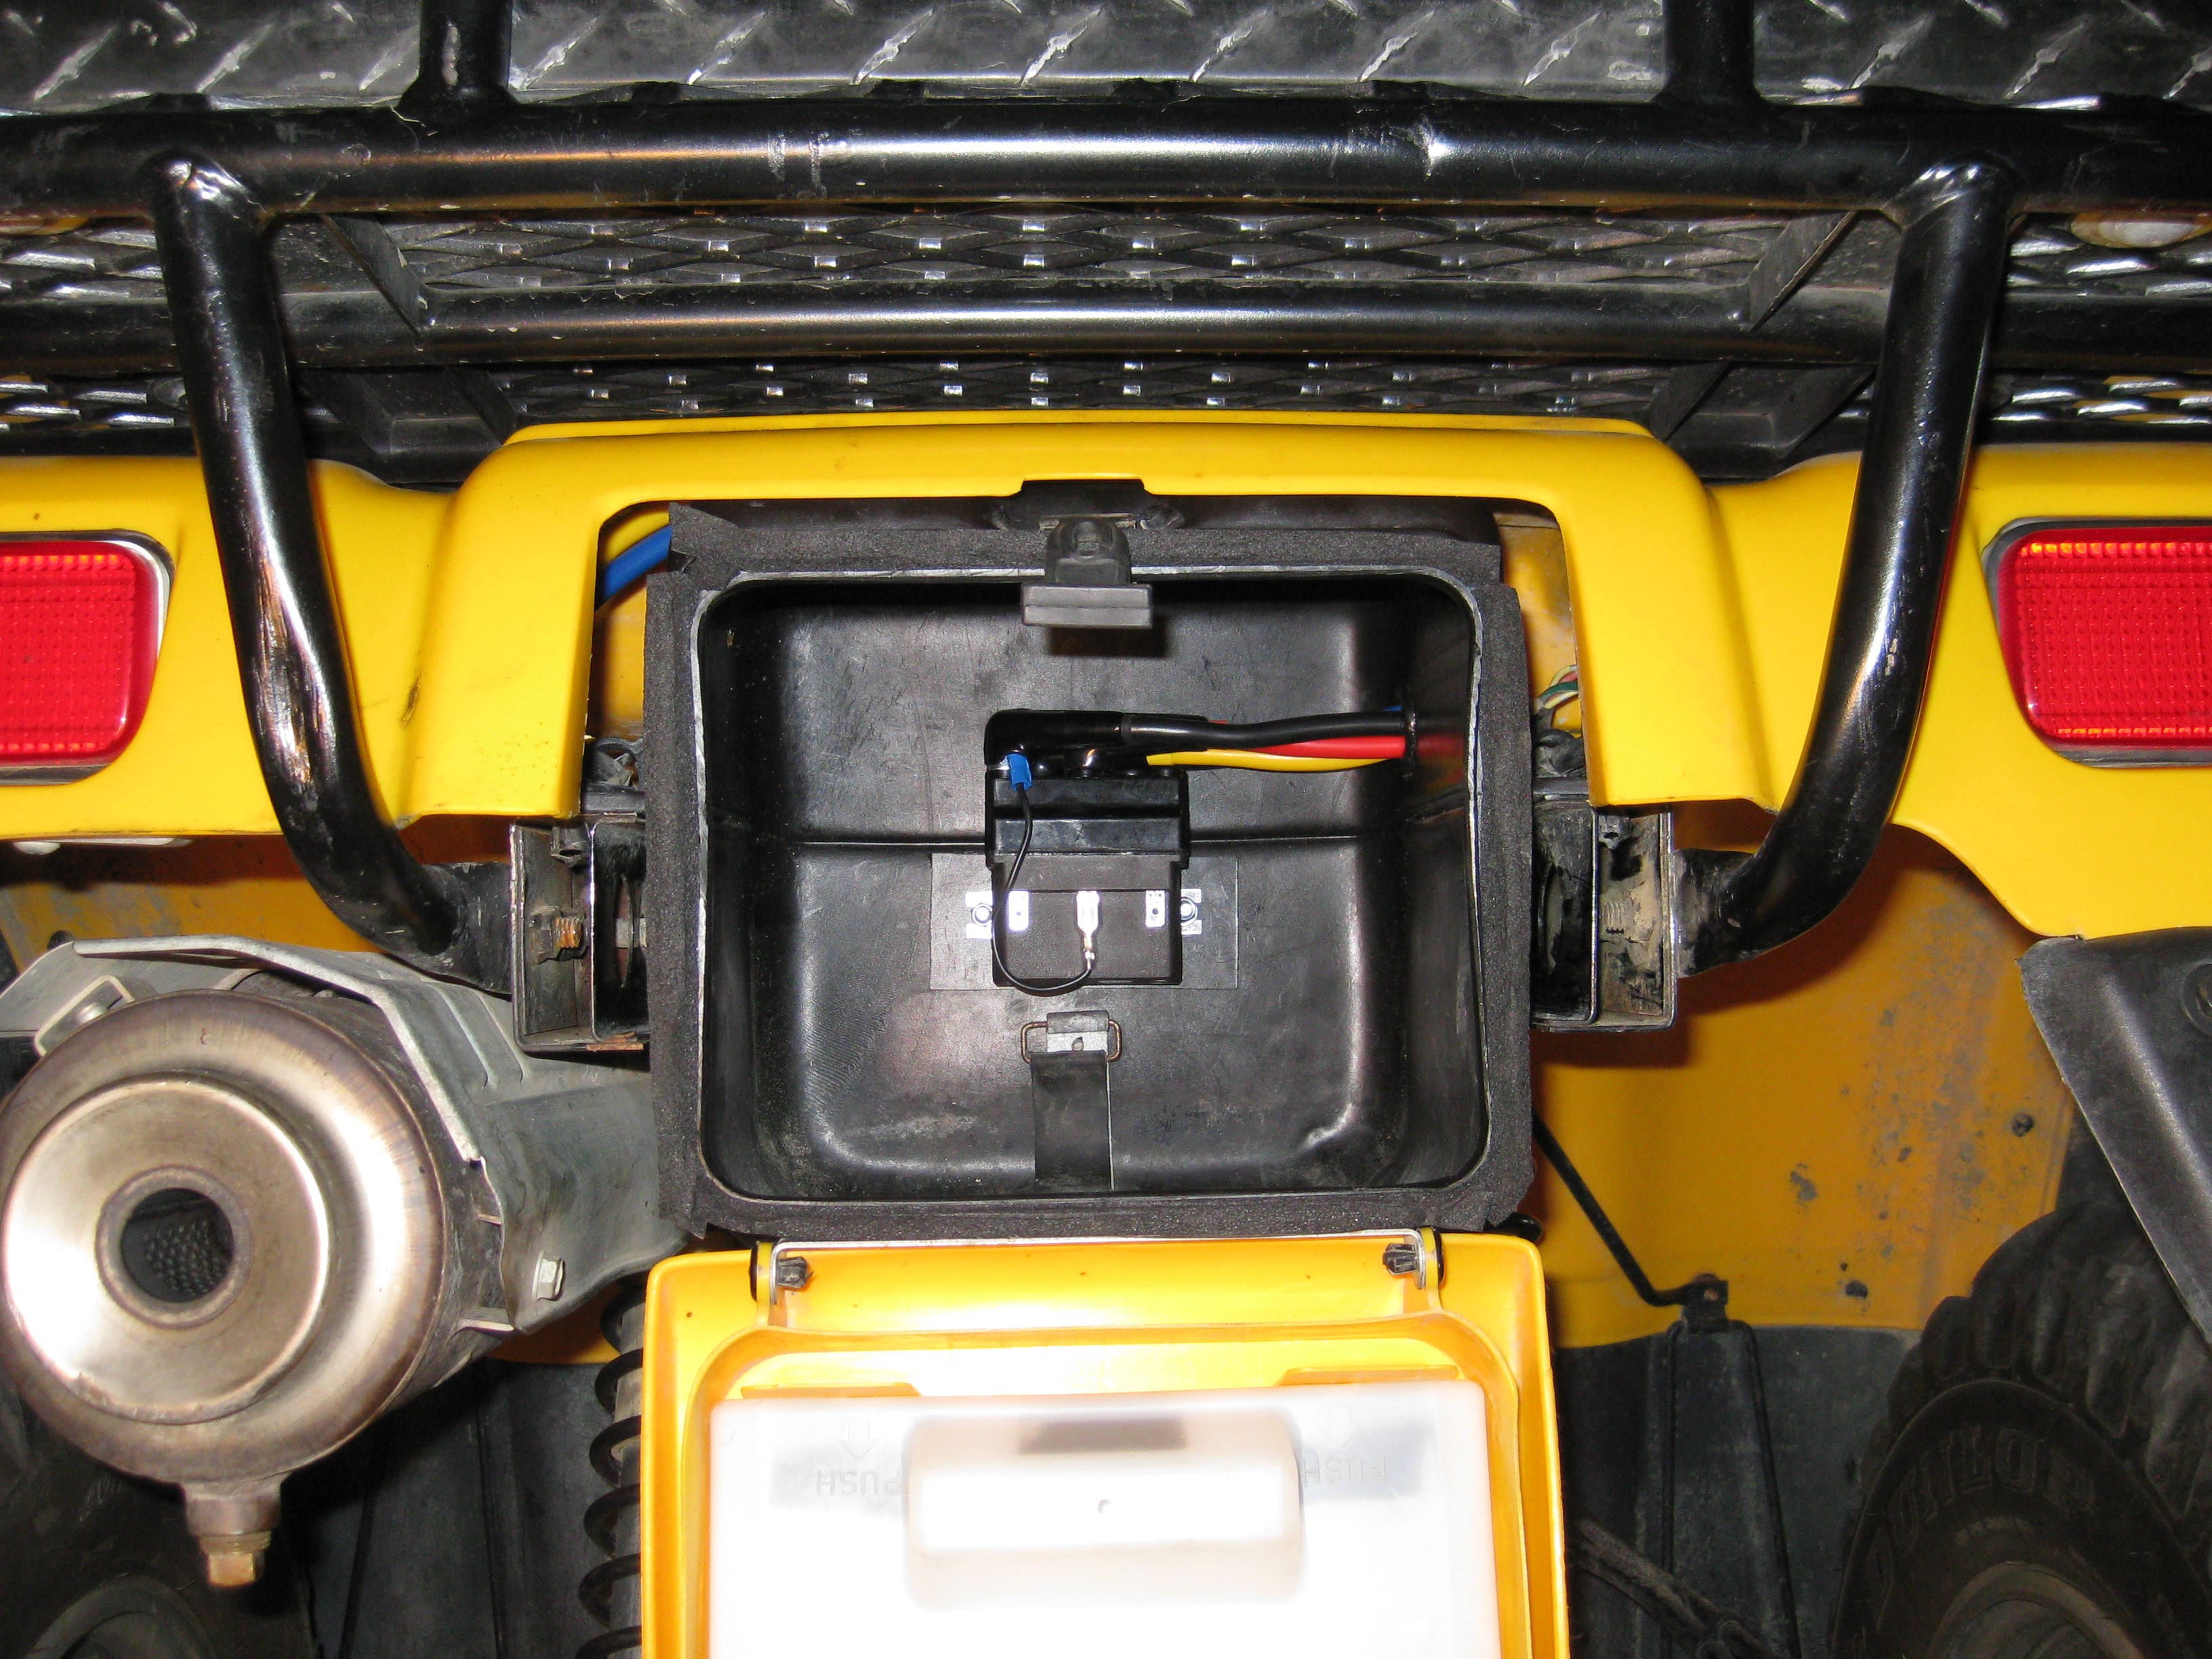 Honda Atv Foreman Winch Diagram Free Wiring For You Superwinch 2000 450 Best Site Harness Snorkel Rancher